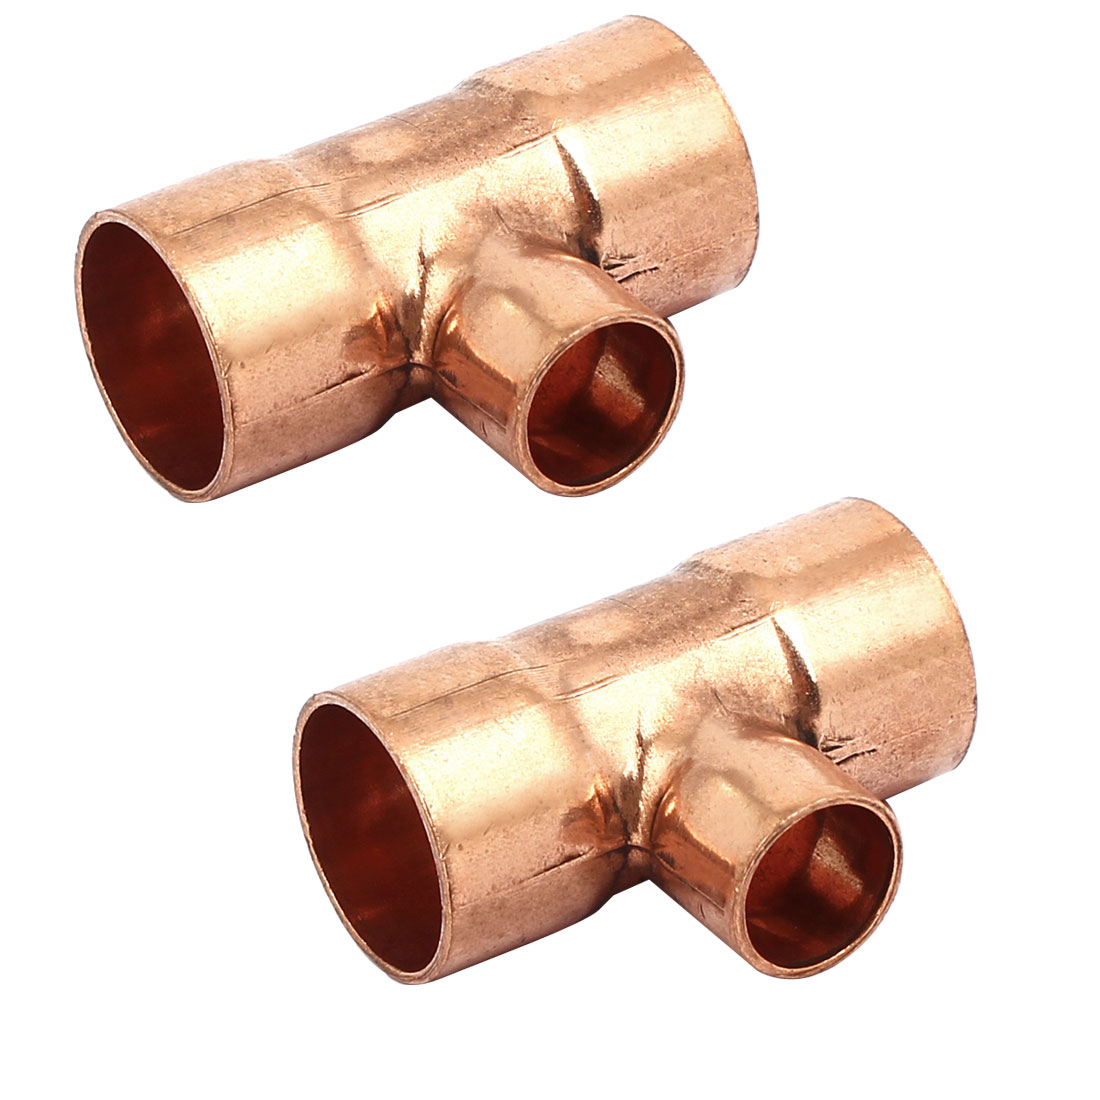 16mmx10mm Copper Tee Reducing Fitting Air Conditioner Plumbing Accessory 2pcs